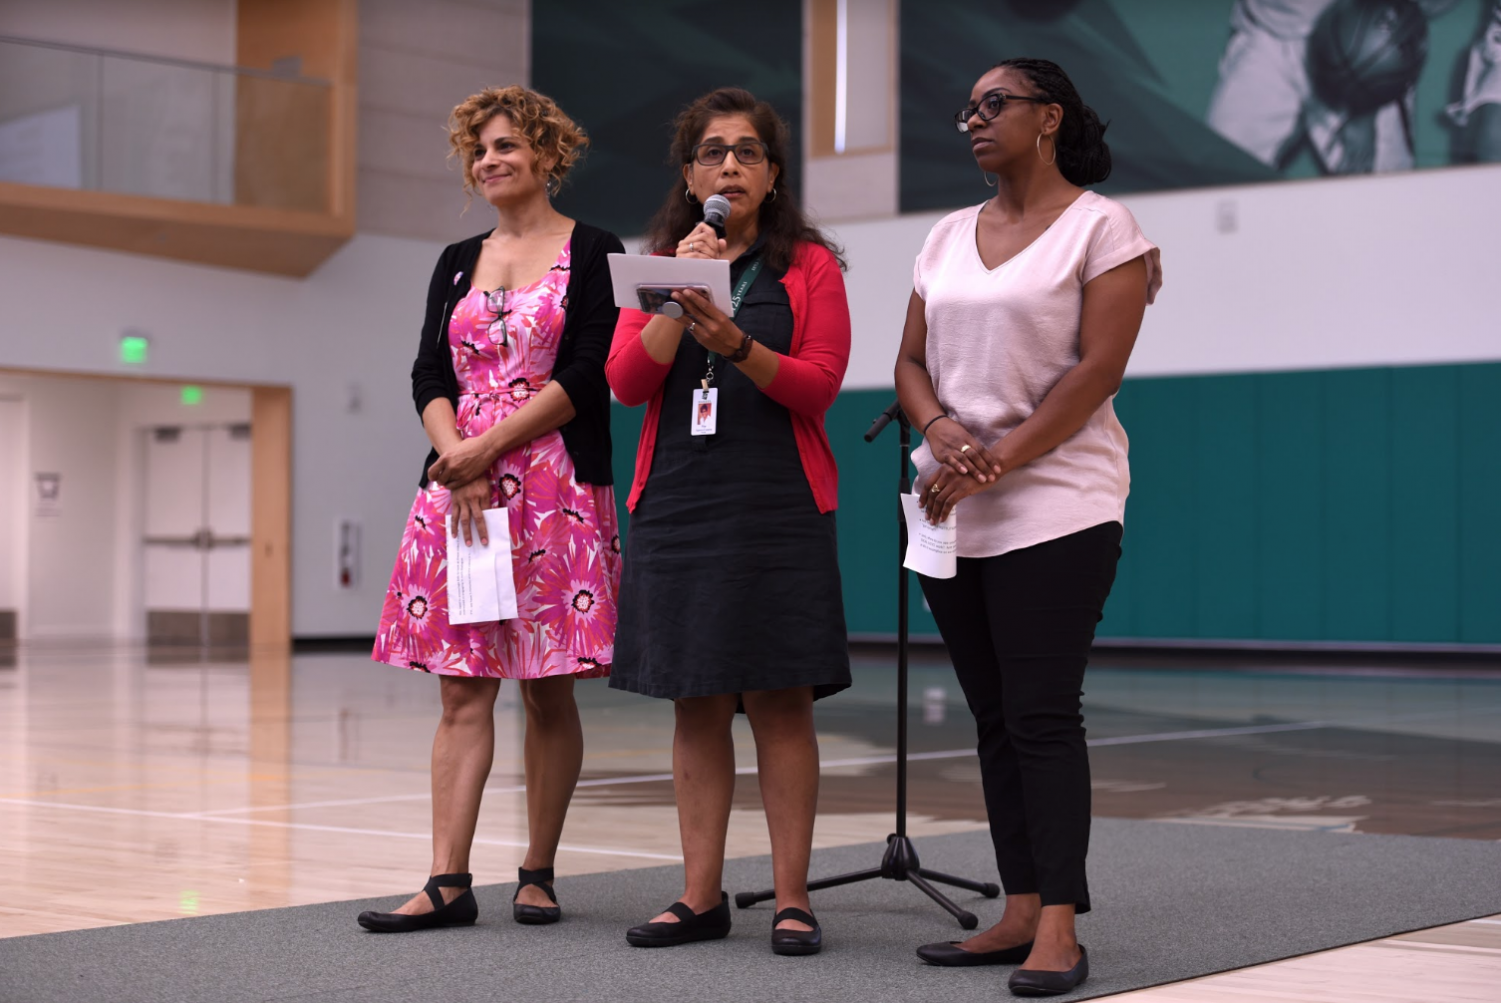 Diversity Committee faculty members Dr. Lola Muldrew, Pilar Aguero-Esparza and Tyeshia Brown speak to the upper school community about an upcoming assembly featuring Jay Smooth, a cultural commentator. To introduce Smooth, Diversity Committee played his YouTube video about race at school meeting yesterday.